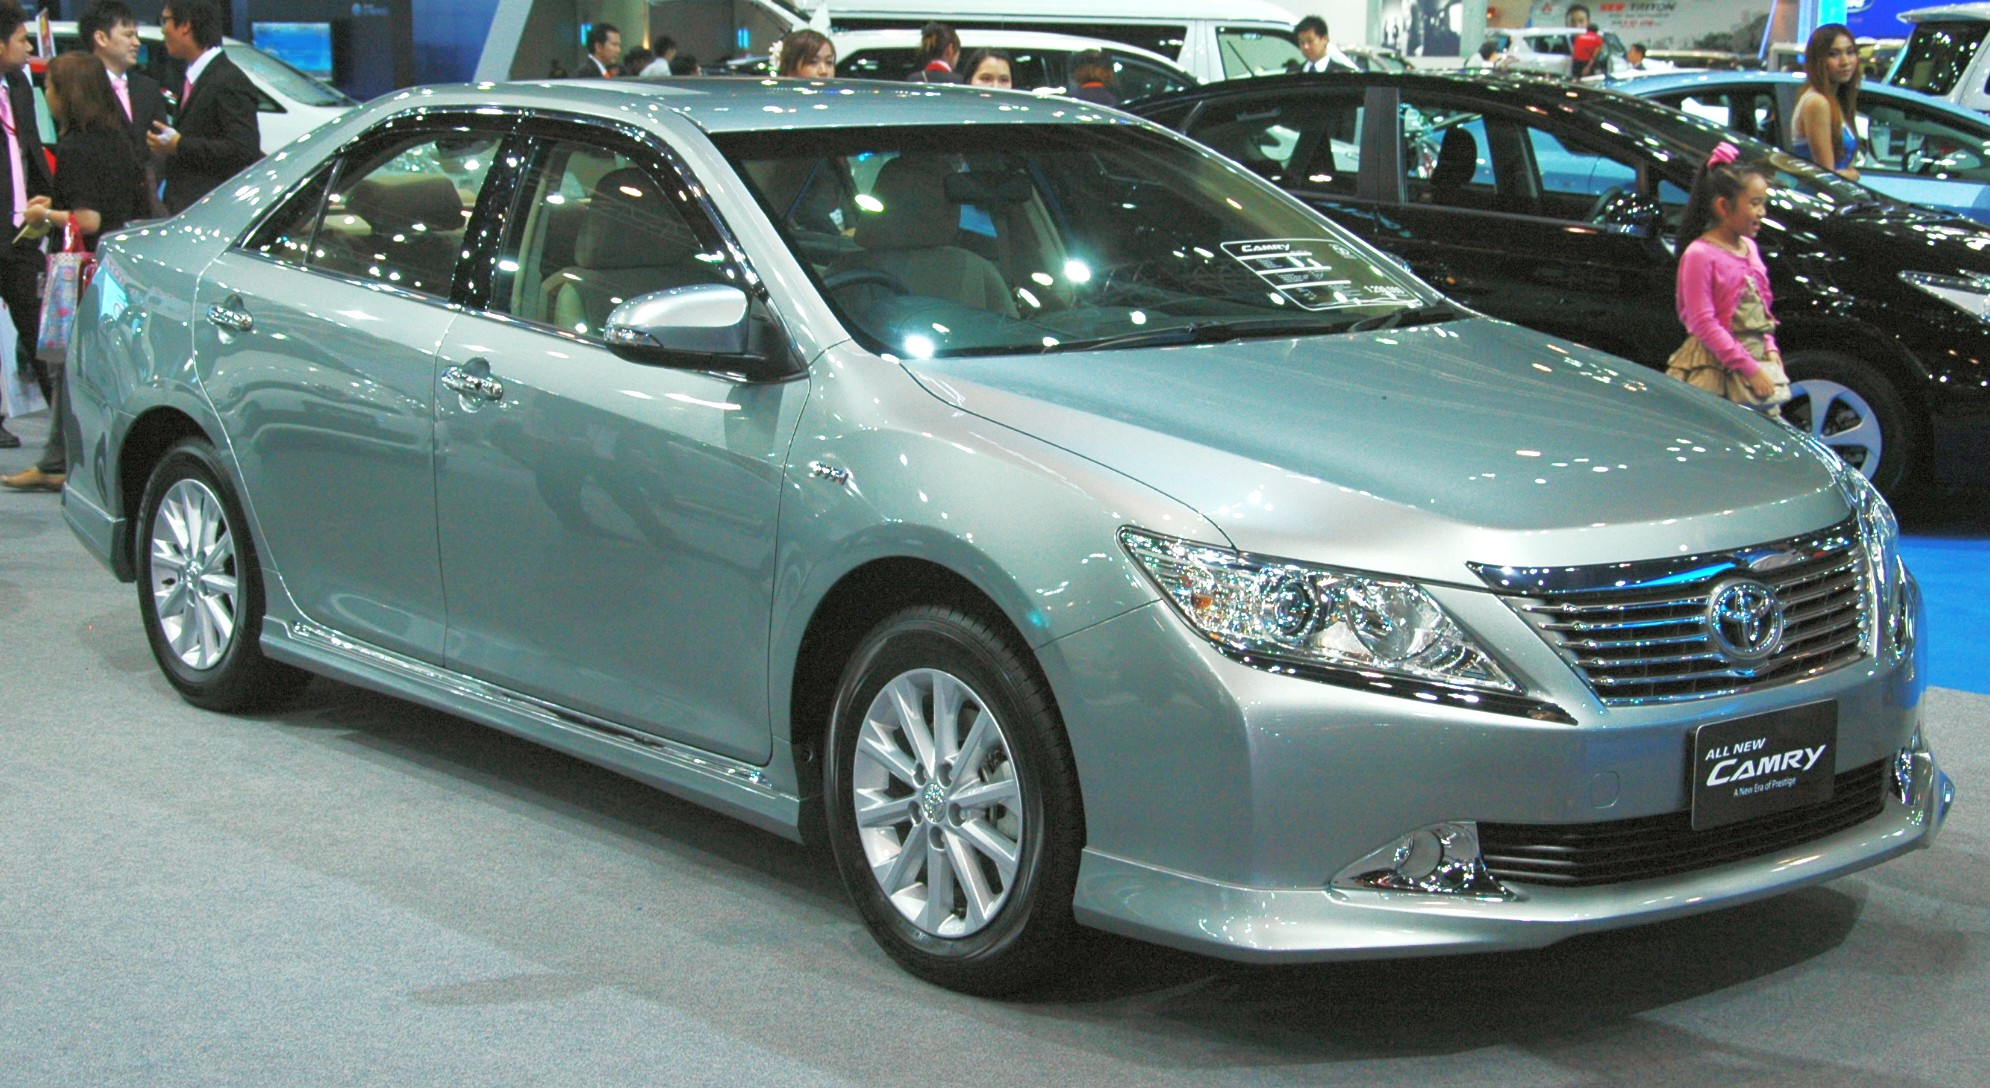 all new camry 2.5 g fitur grand avanza type 3dtuning of toyota sedan 2012 unique